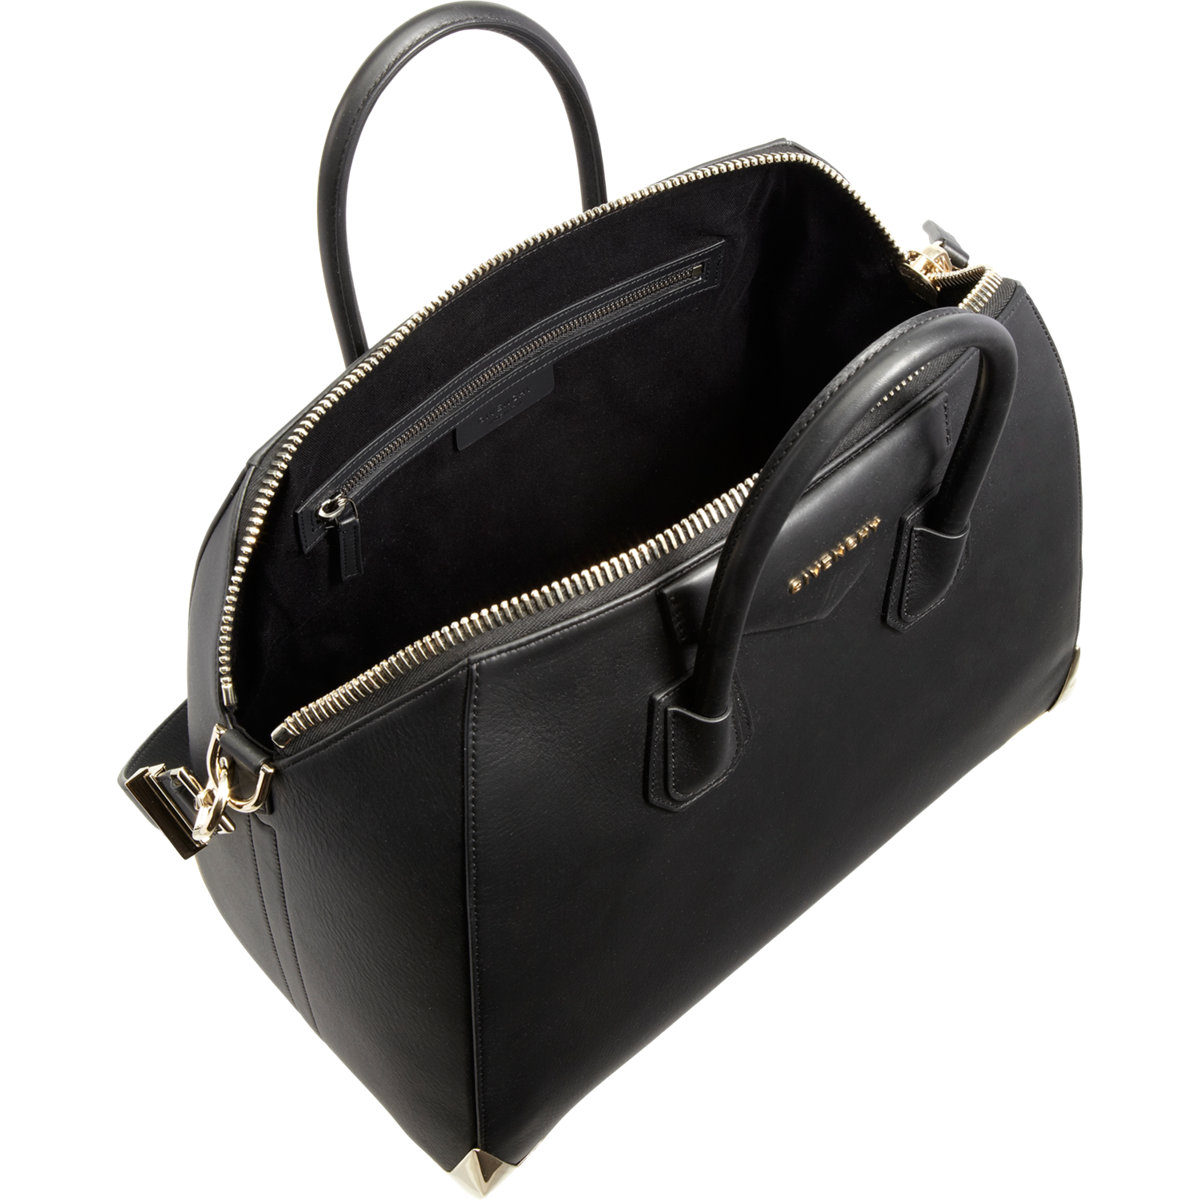 66580c8d6c Givenchy Large Antigona Duffel with Metal Corners in Black - Lyst